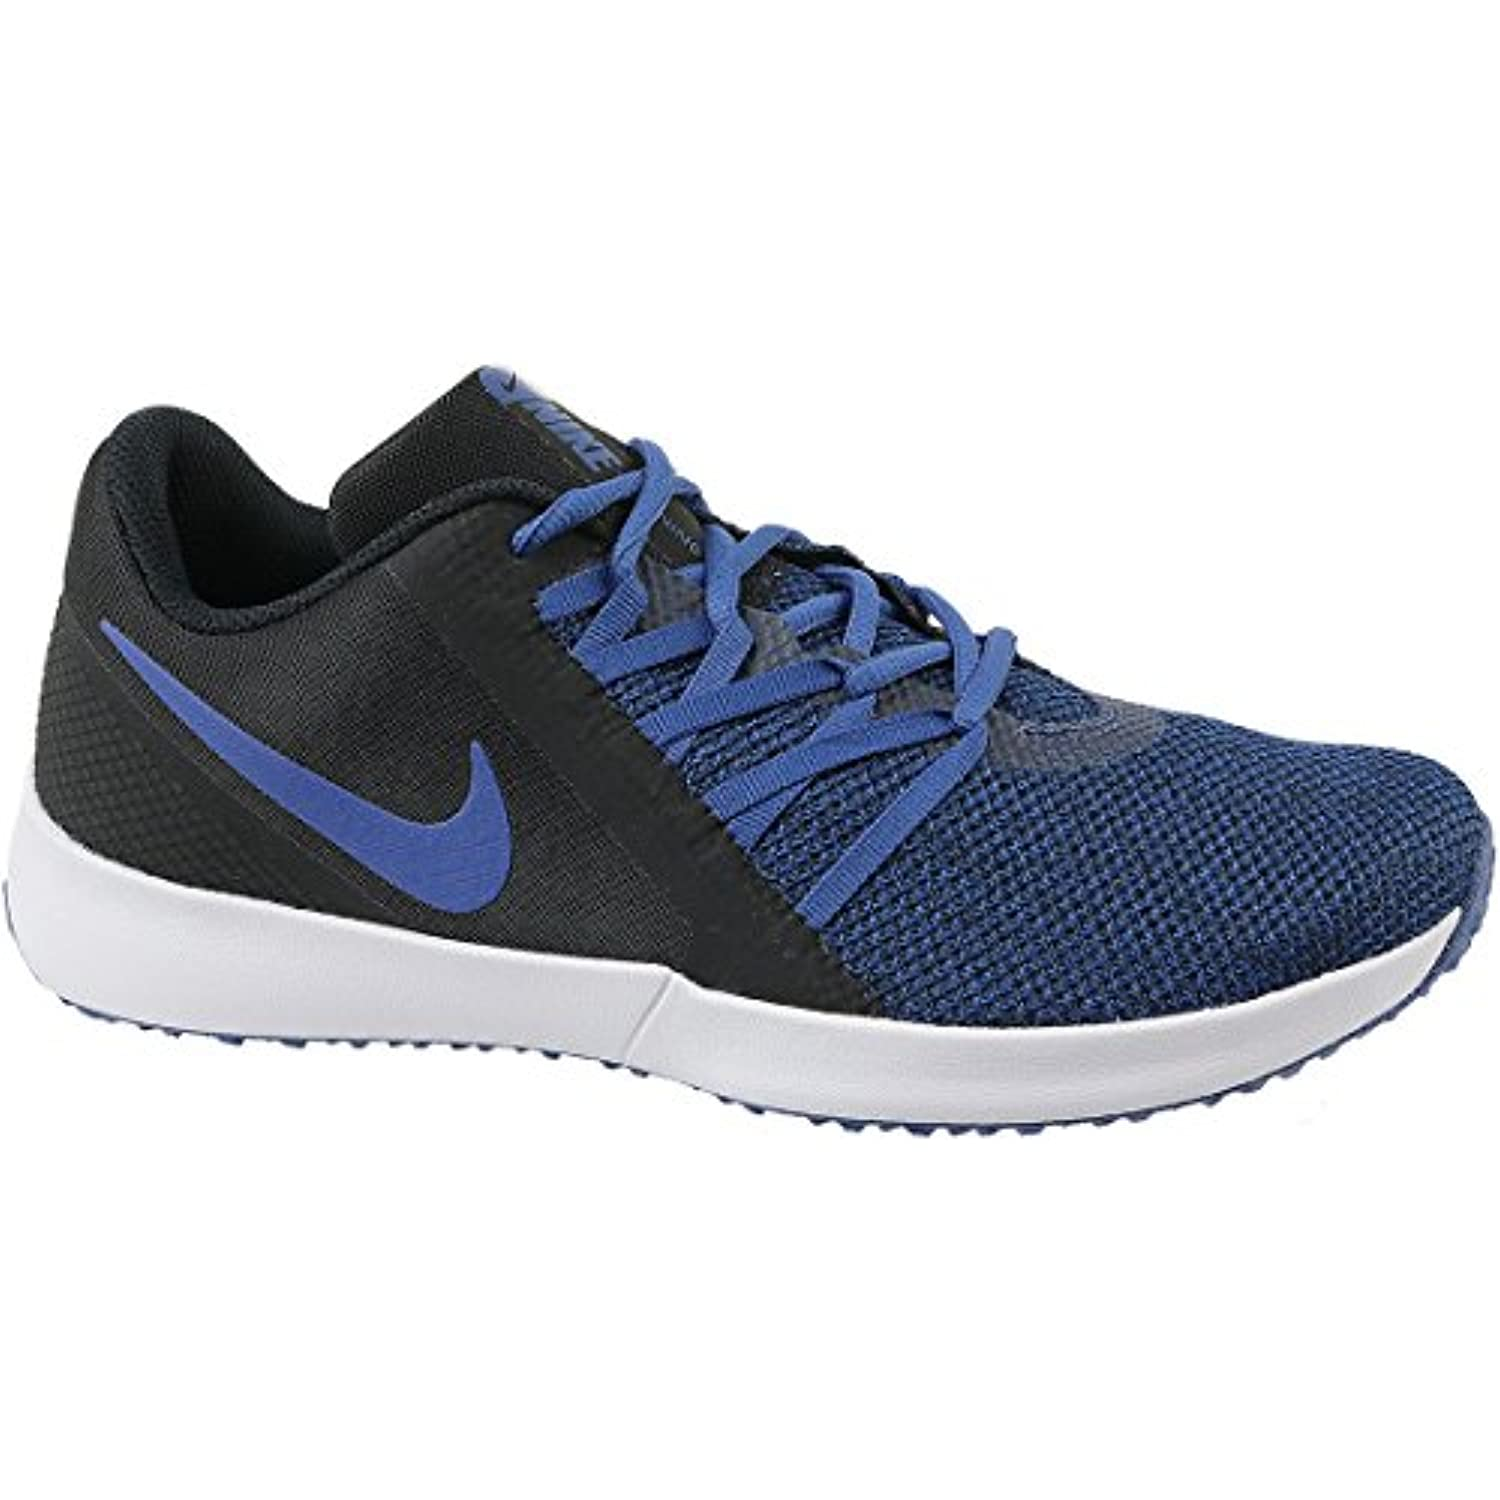 NIKE Varsity Complete Trainer - Aa7064-004, Baskets Homme - B0761Z25VQ - Trainer ea6683